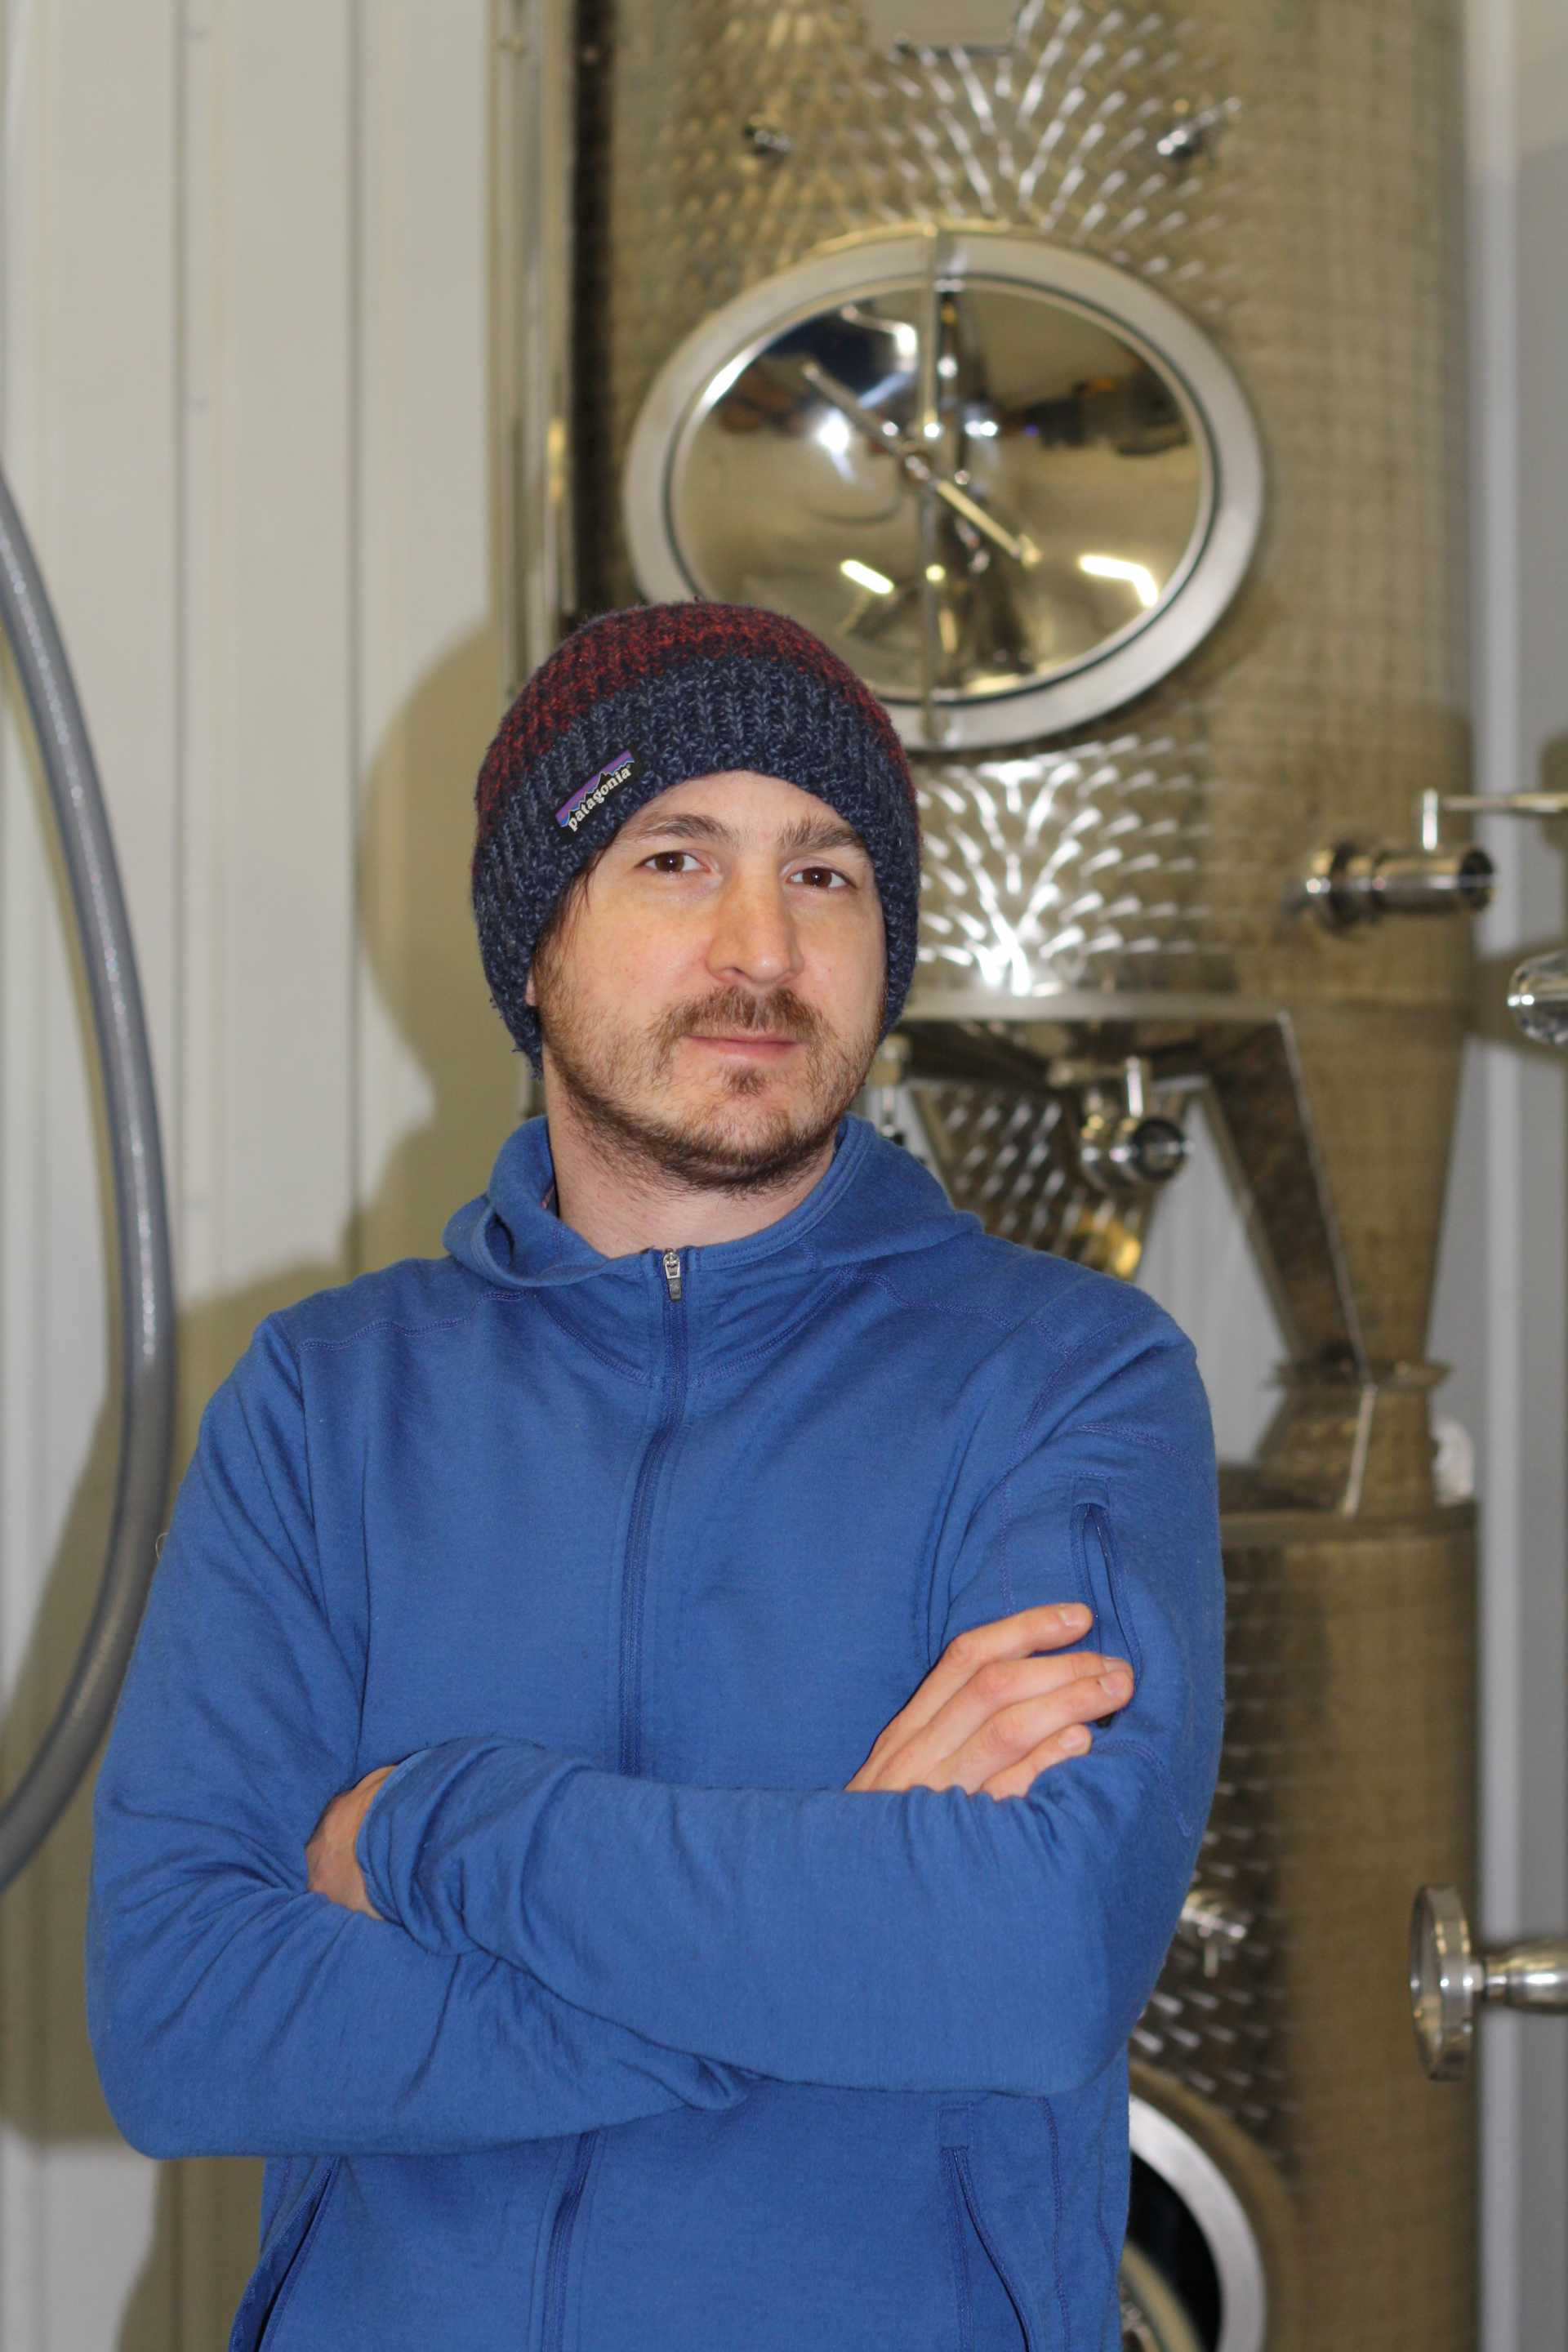 Urban wine producer Sergio Verrillo is pictured - image courtesy of Blackbook.